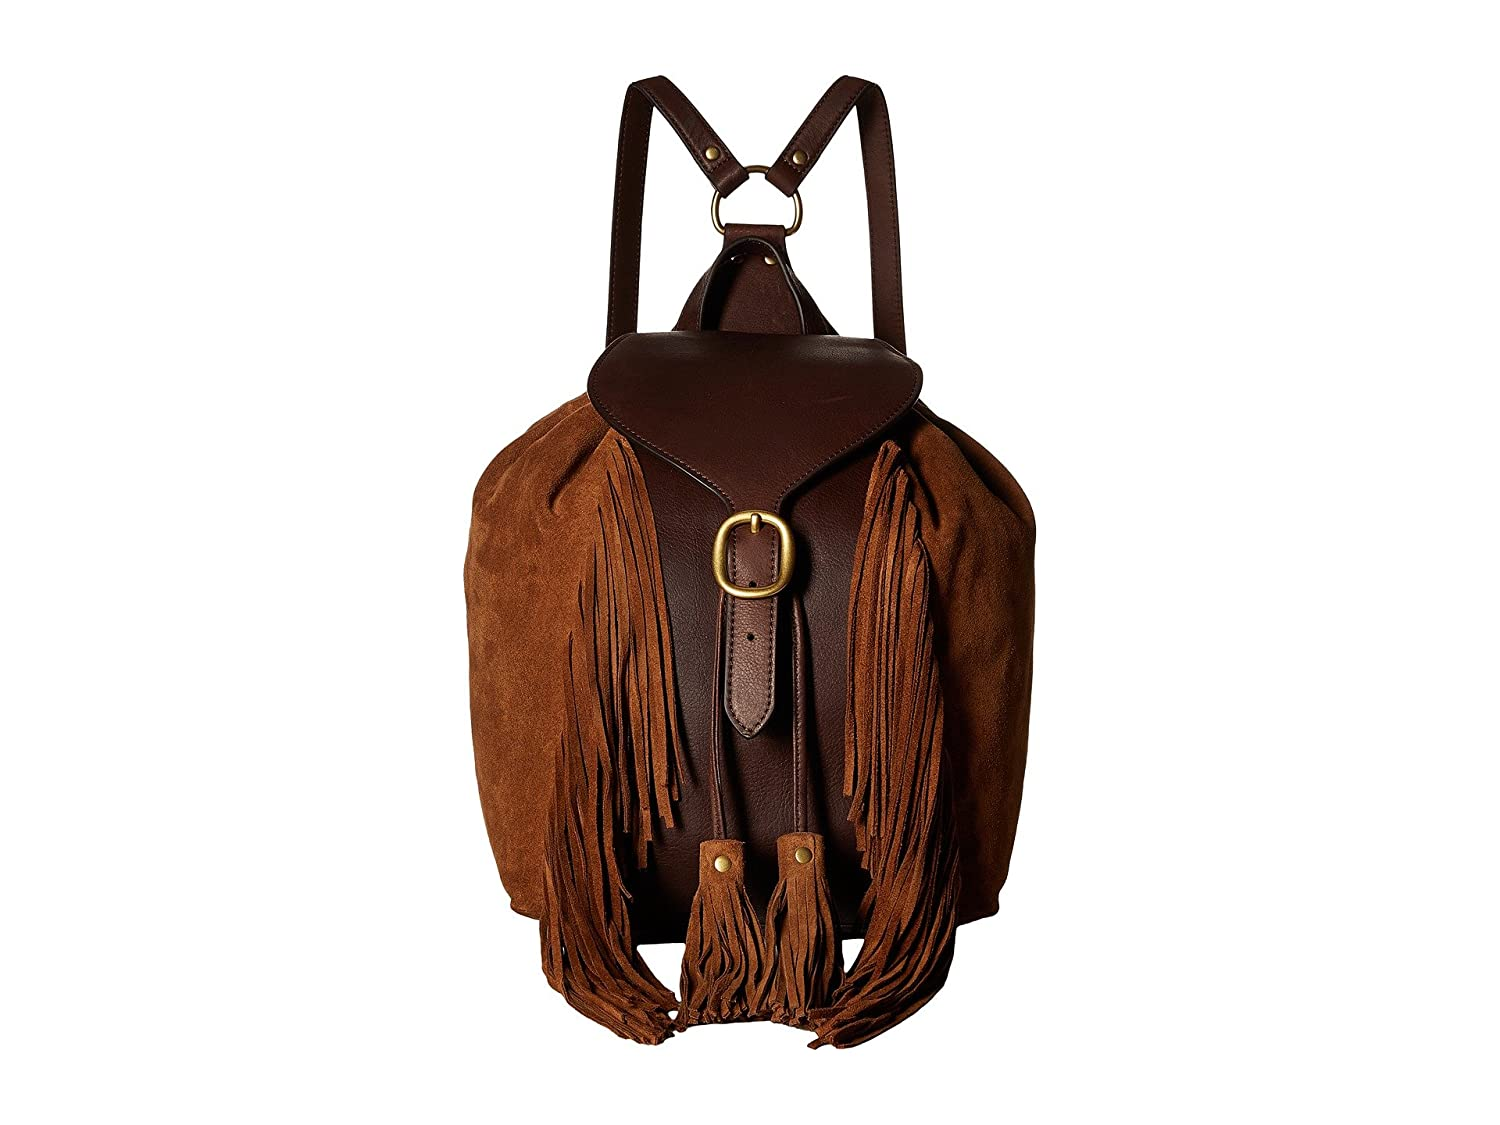 [フライ] Frye レディース Clara Fringe Backpack バックパック [並行輸入品]  Dark Brown Soft Vintage Leather/Suede B01N67DM6Y